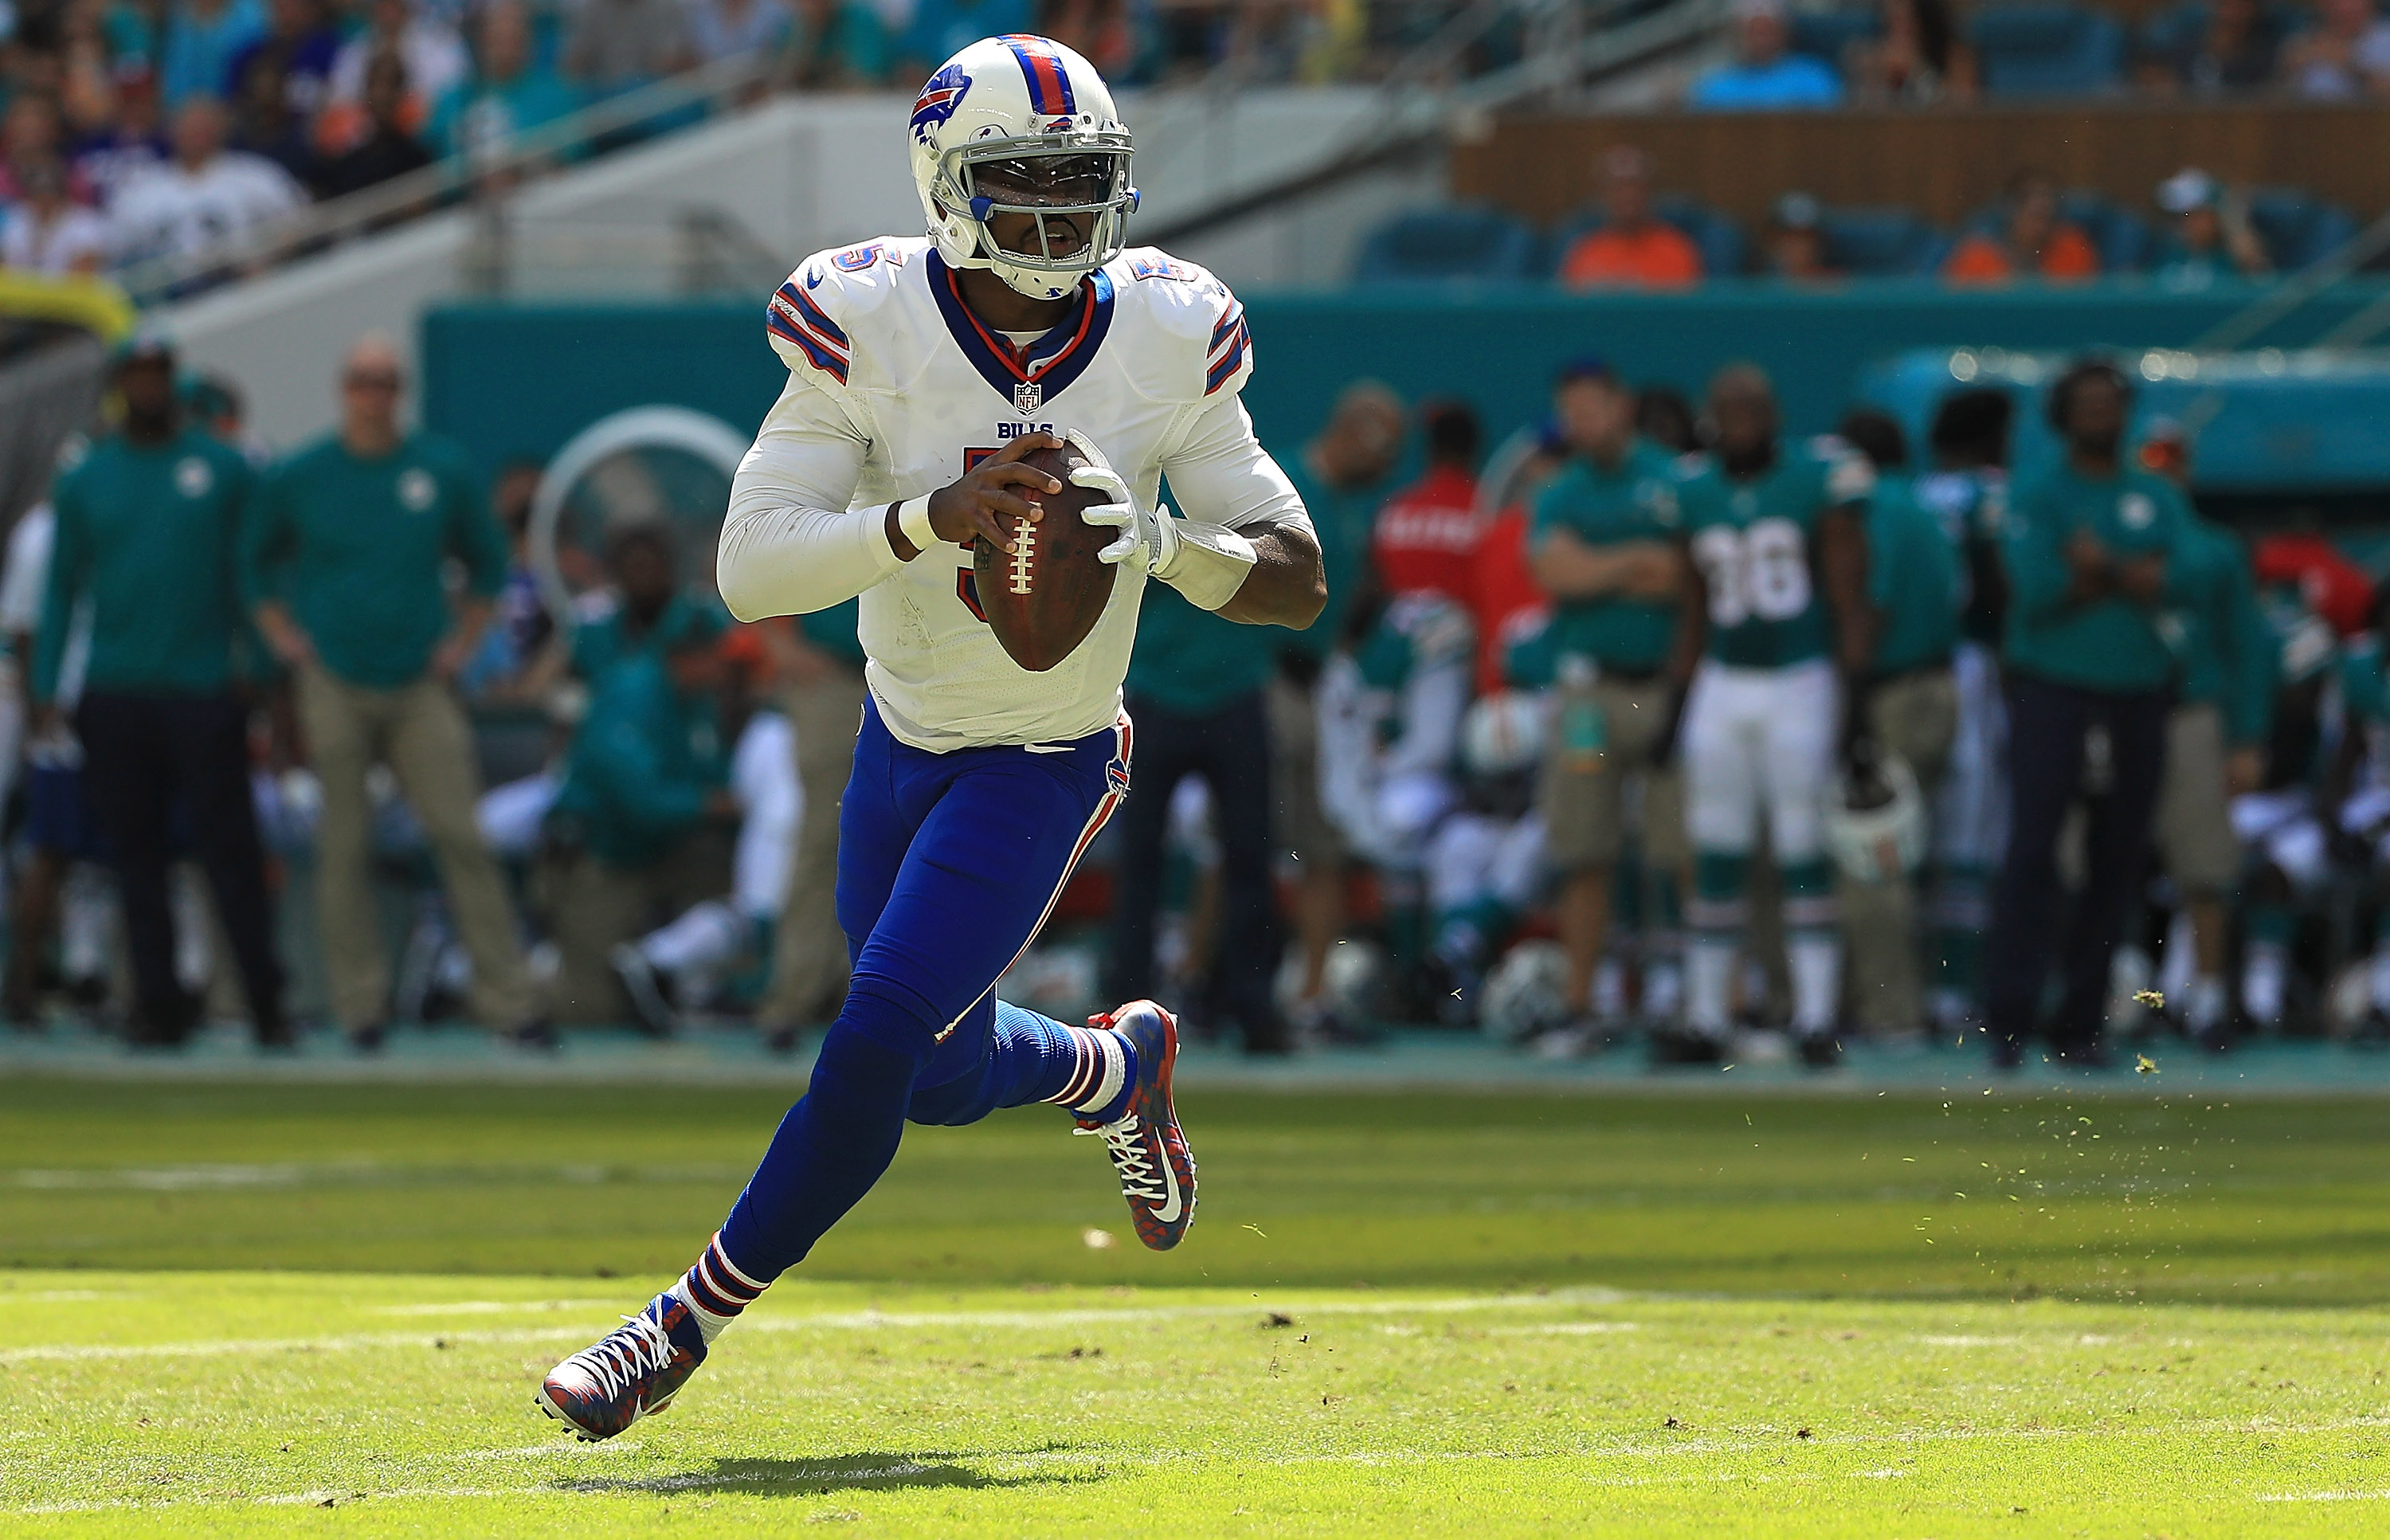 MIAMI GARDENS, FL - OCTOBER 23:  Tyrod Taylor #5 of the Buffalo Bills passes during a game against the Miami Dolphins on October 23, 2016 in Miami Gardens, Florida.  (Photo by Mike Ehrmann/Getty Images)